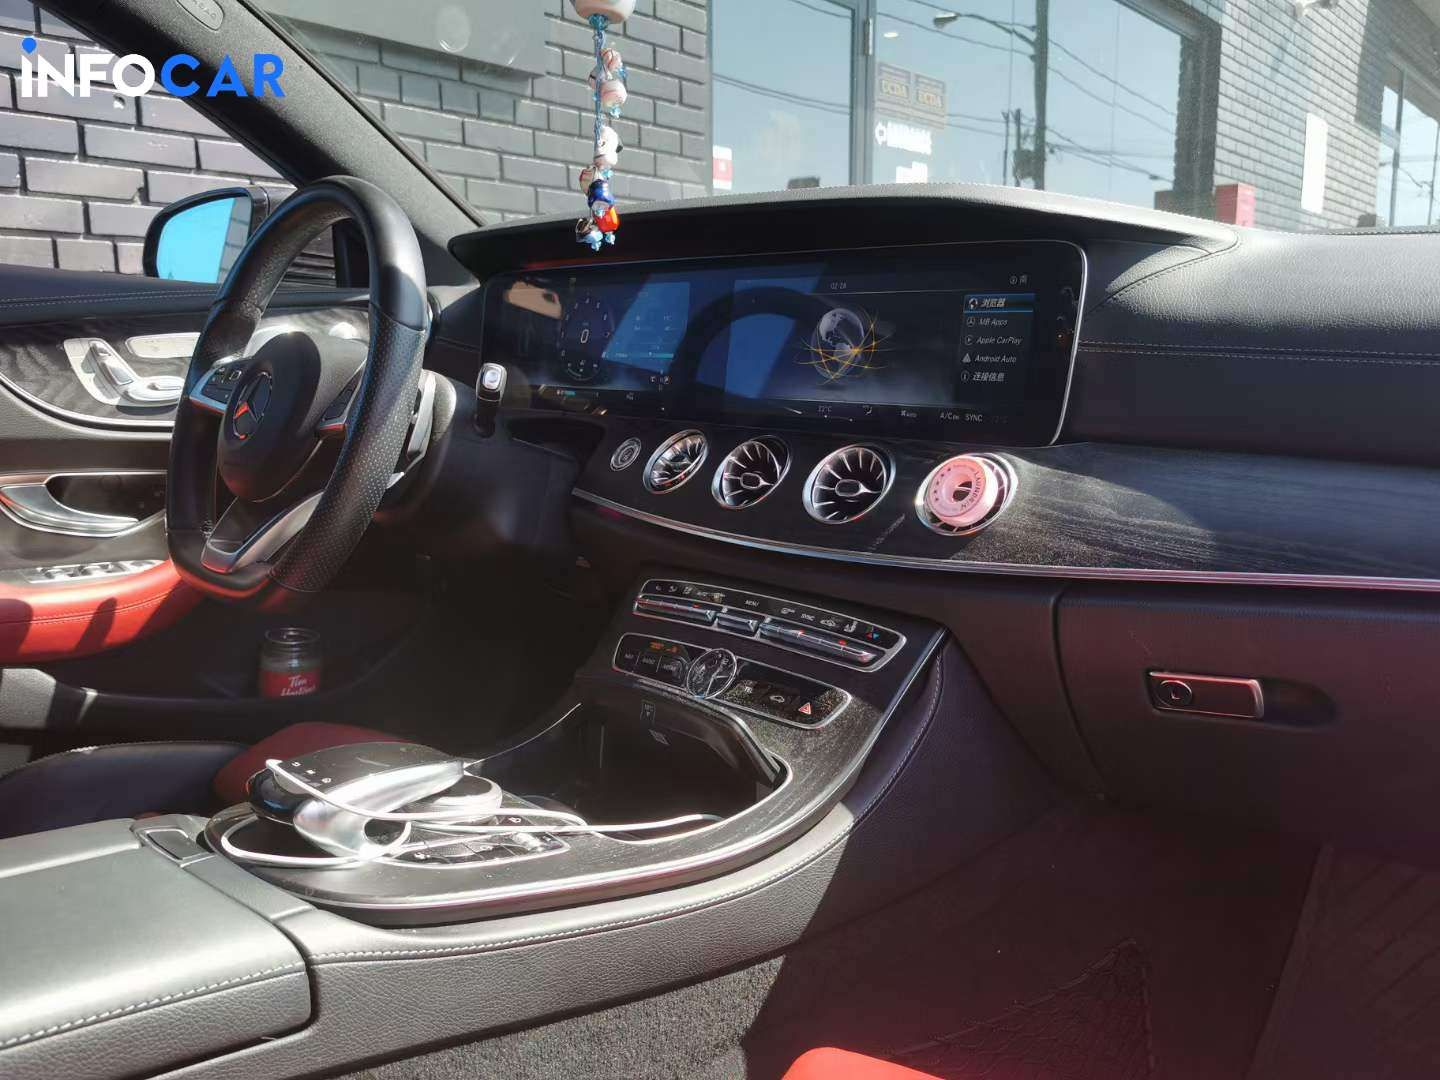 2018 Mercedes-Benz E-Class null - INFOCAR - Toronto's Most Comprehensive New and Used Auto Trading Platform